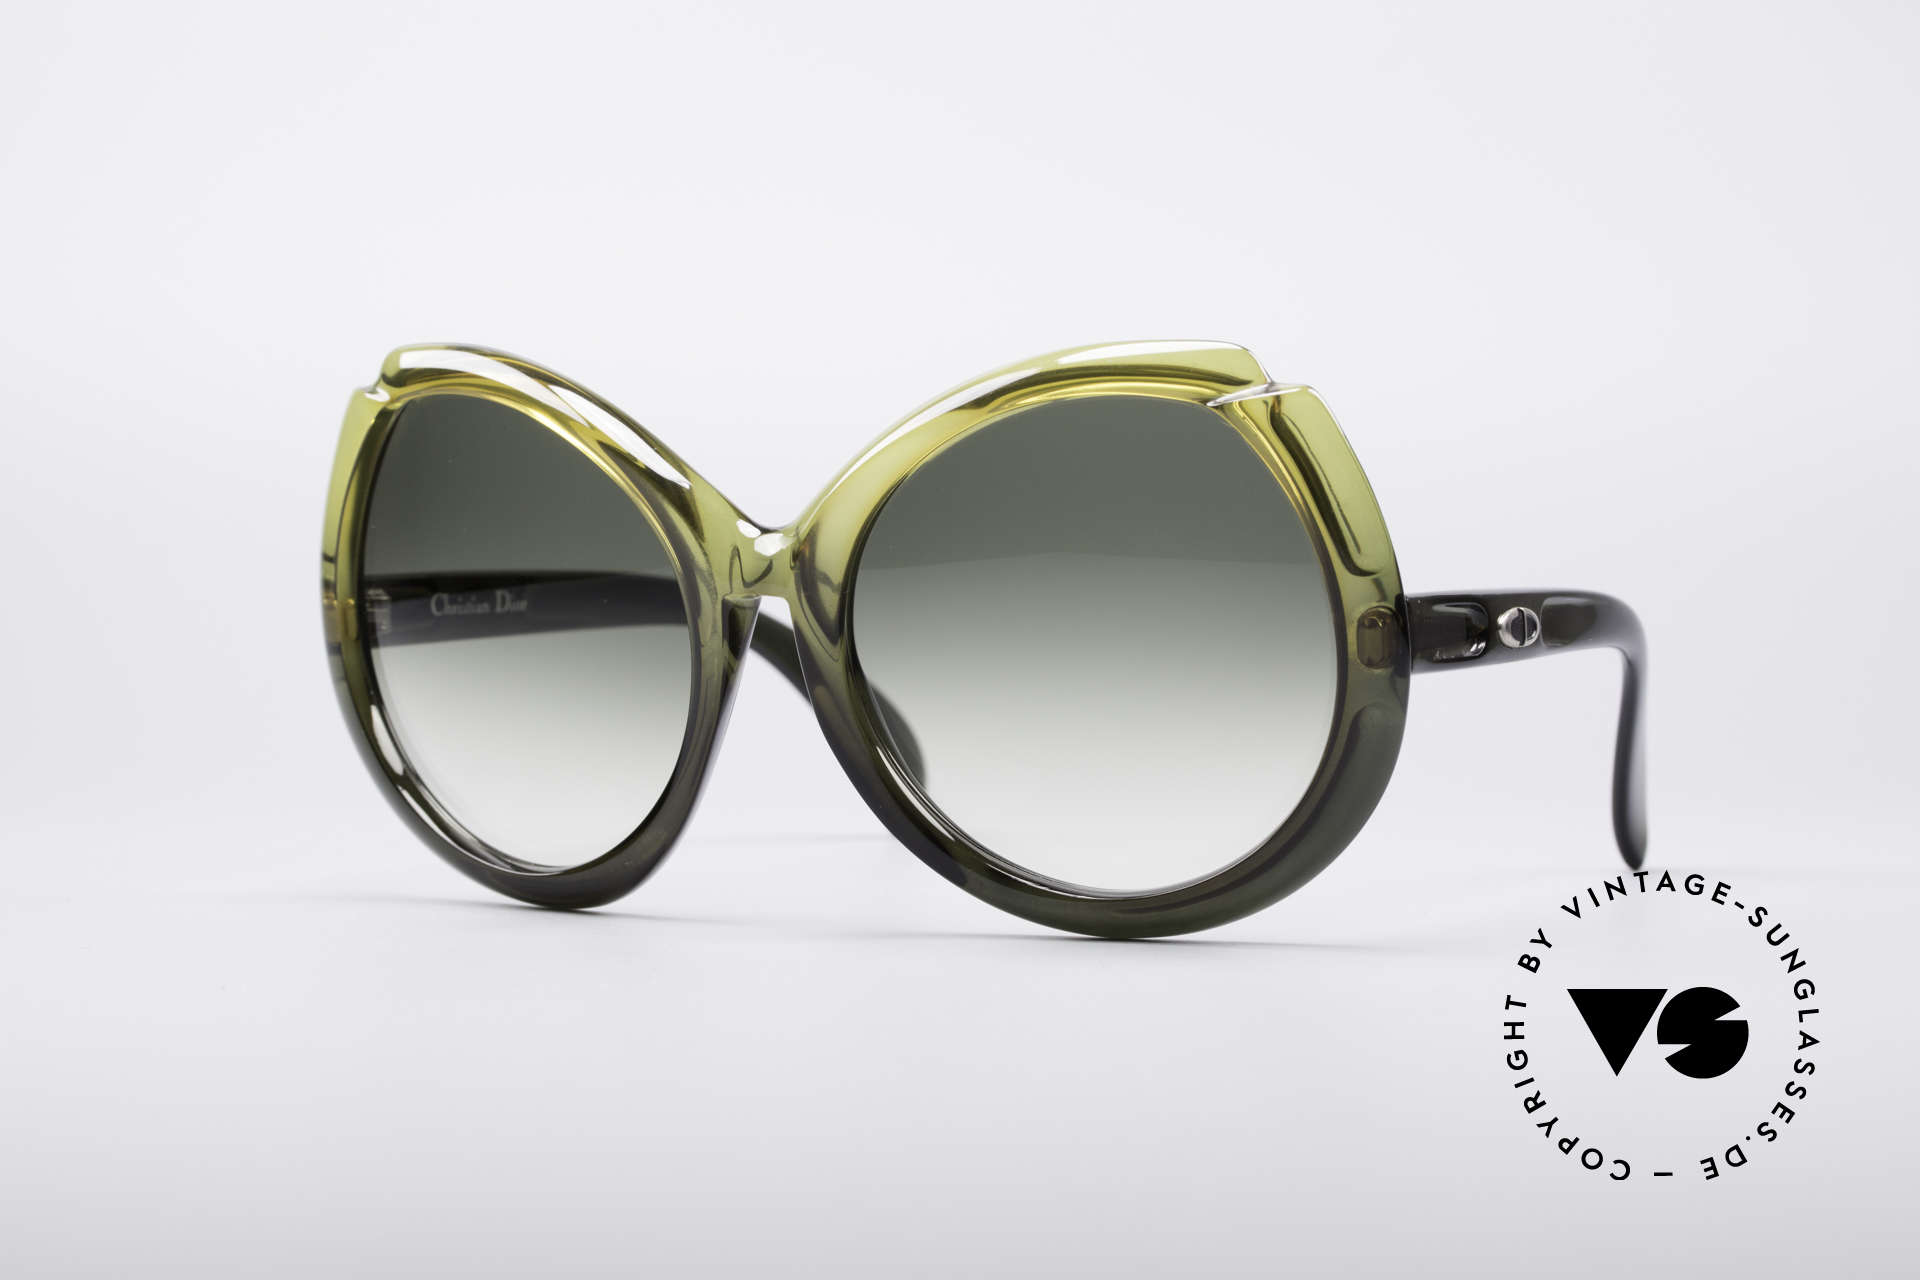 Christian Dior D11 Huge 70's Shades, Ch. Dior XXL designer sunglasses from the early 1970's, Made for Women